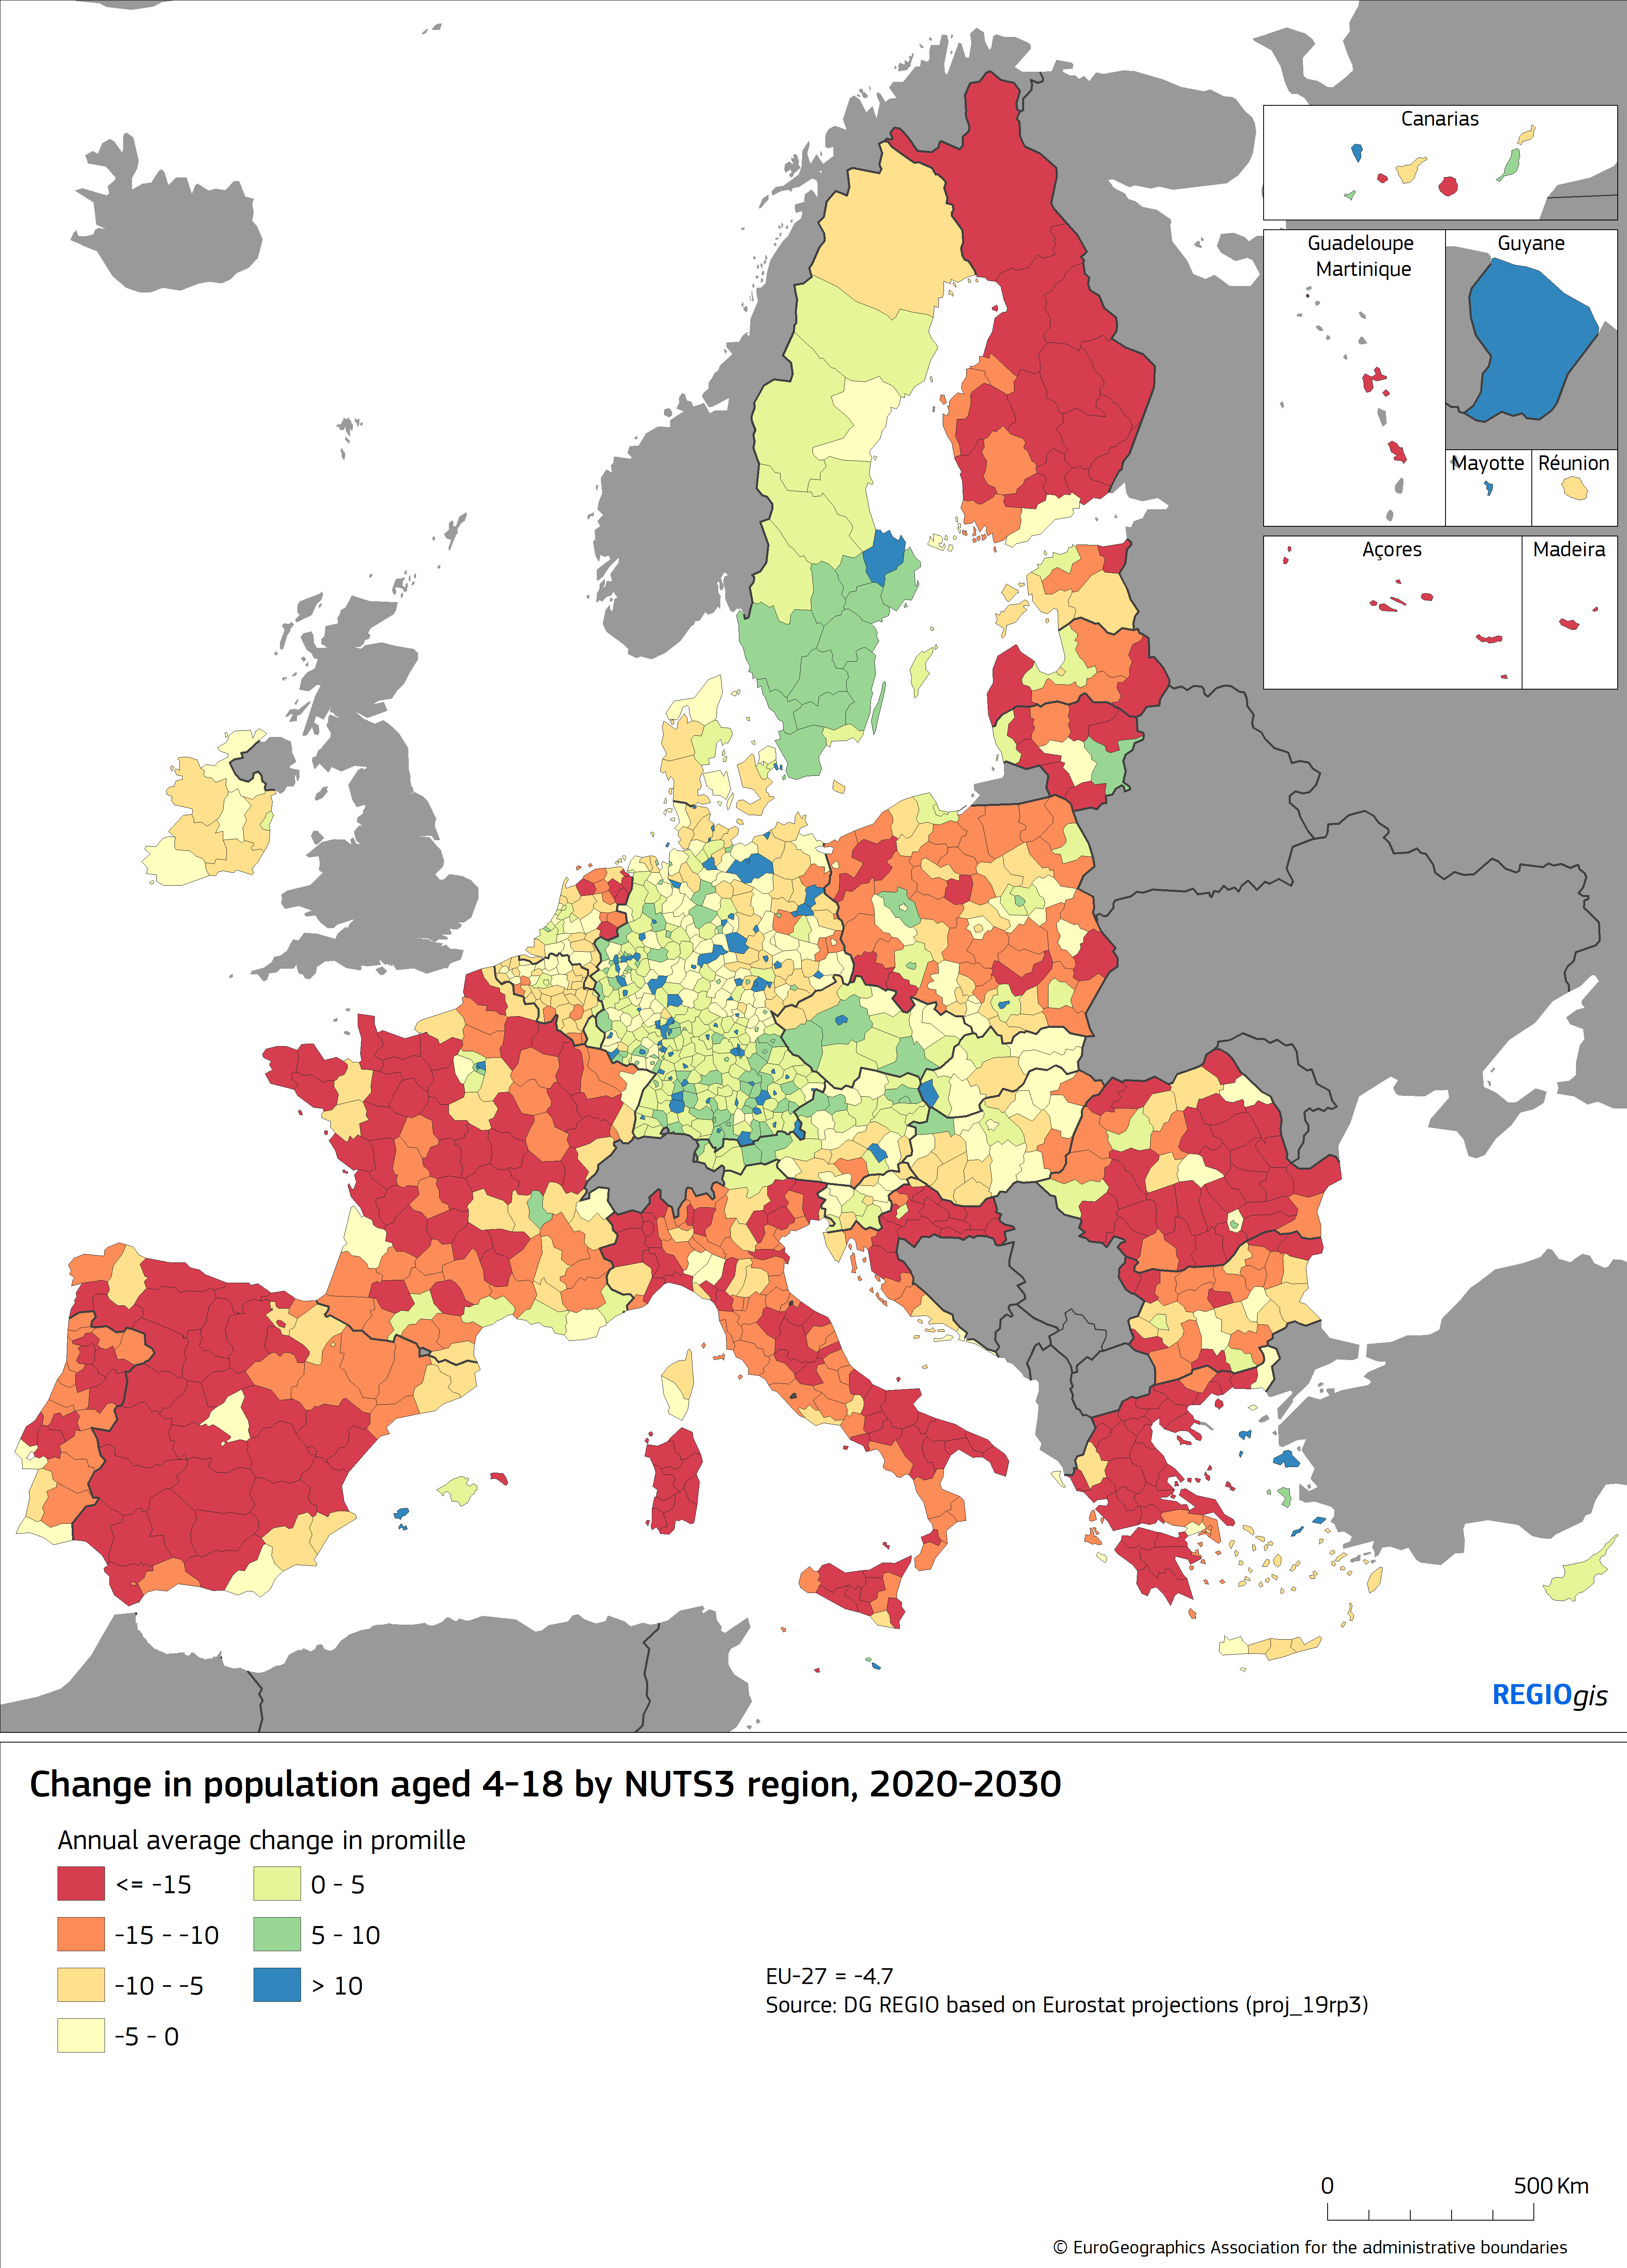 Map 1 Change in population aged 4-18 by NUTS3 region, 2020-2030